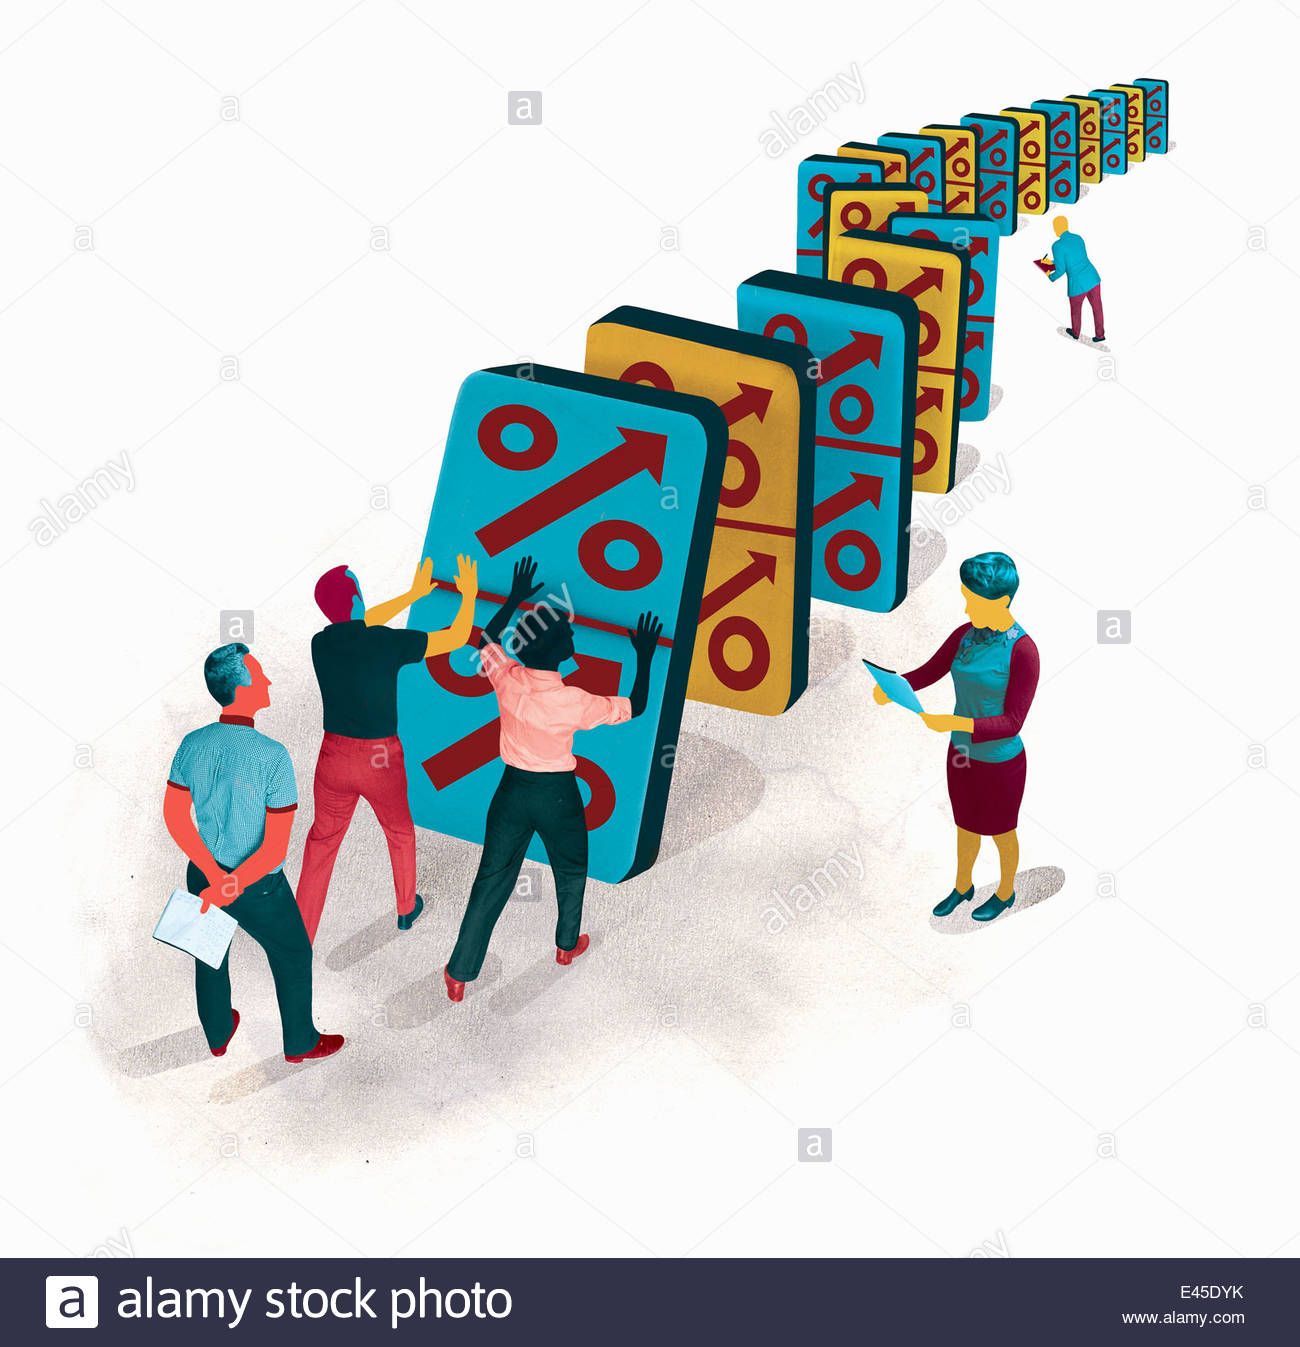 Business people pushing falling percentage symbol dominos in domino effect - Stock Image